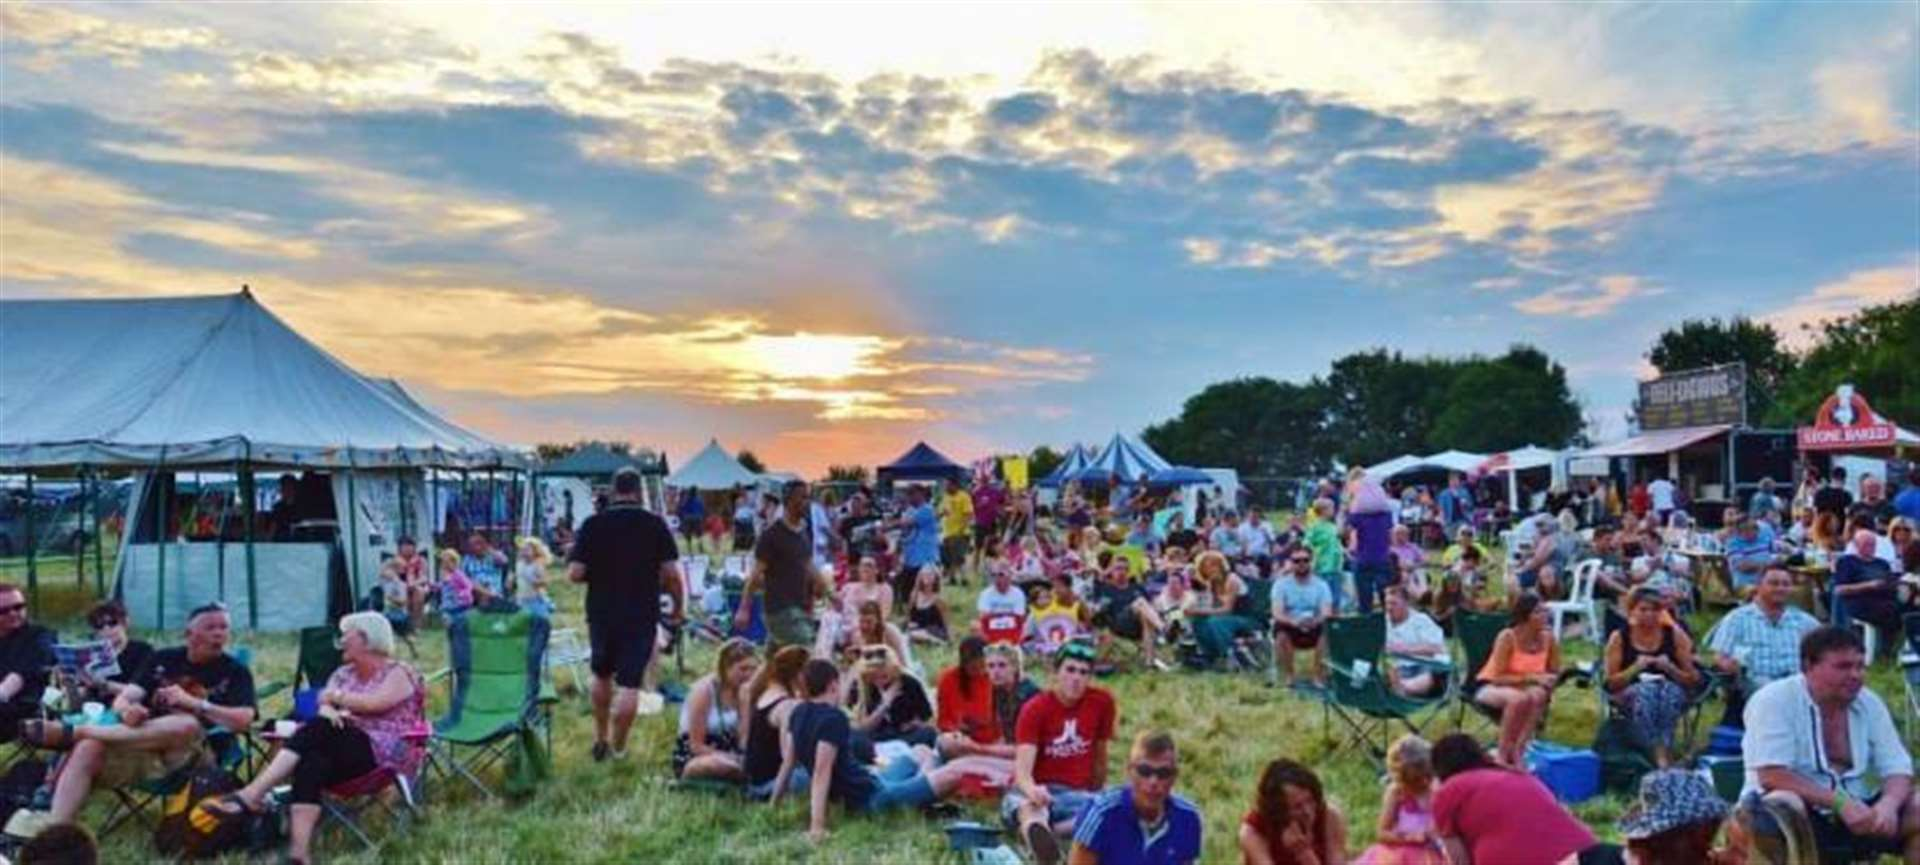 Deerstock festival to return